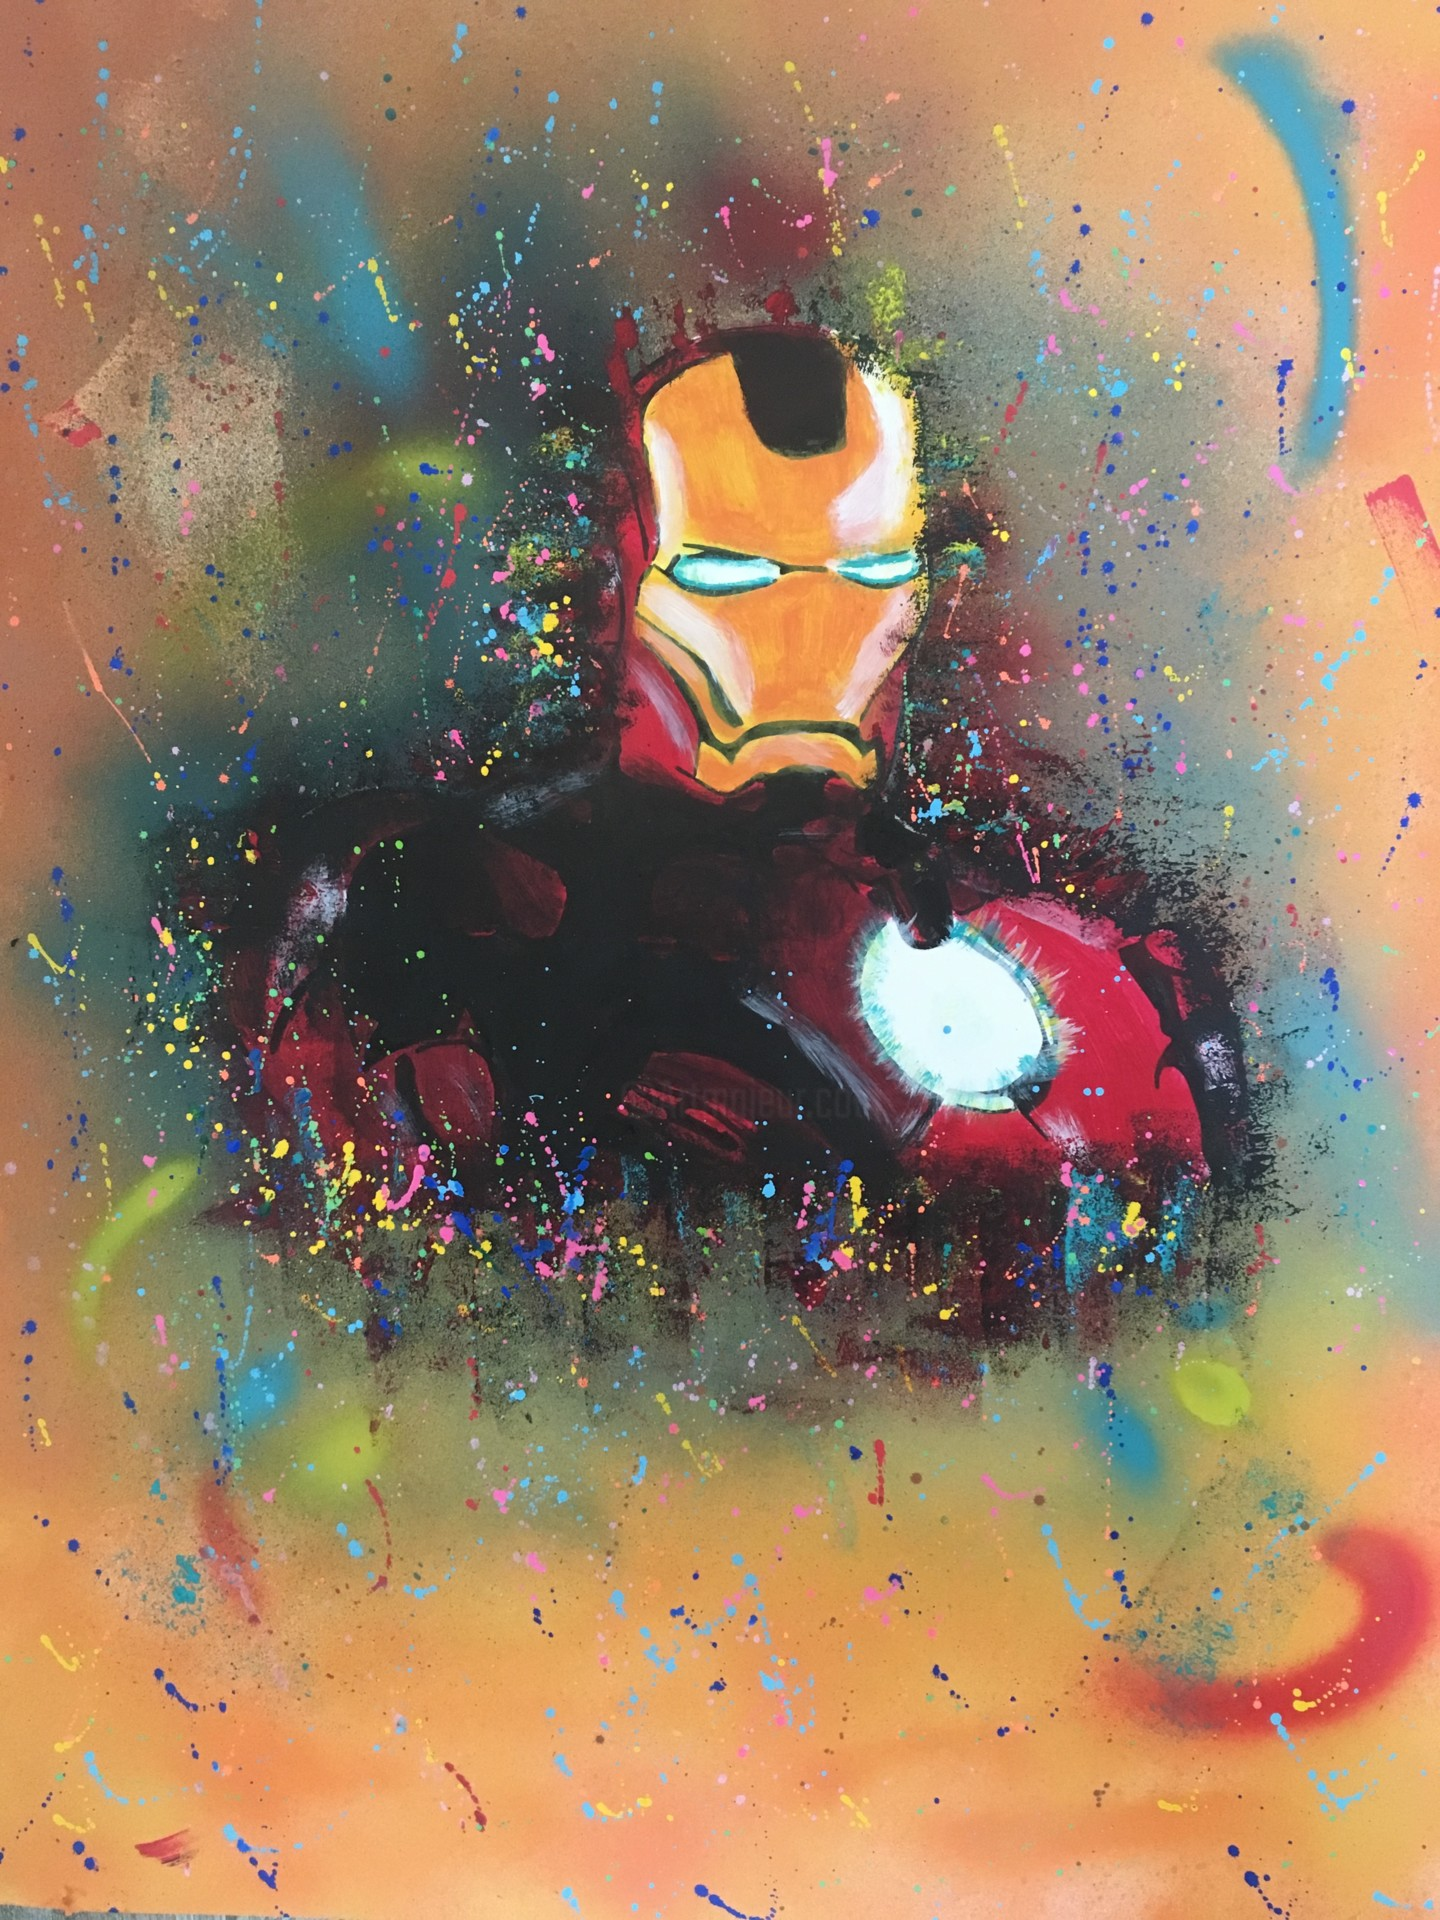 Belle Iron Man Painting by Mbkza | Artmajeur ET-22